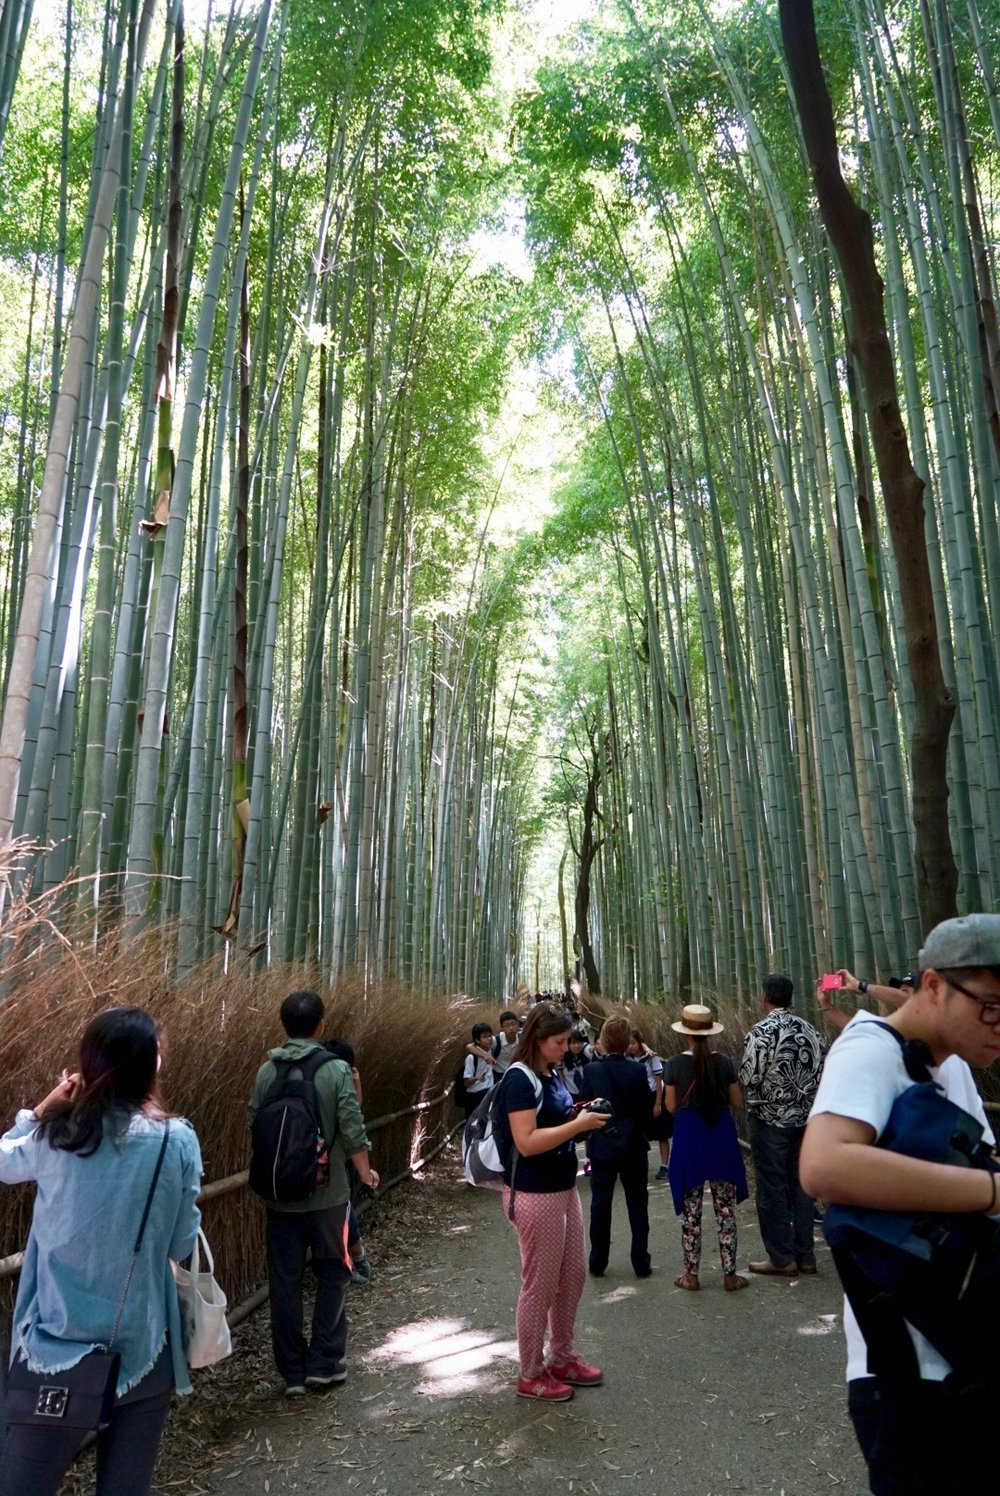 arashiyama bamboo grove  - gobeforethe crowds or not at all....